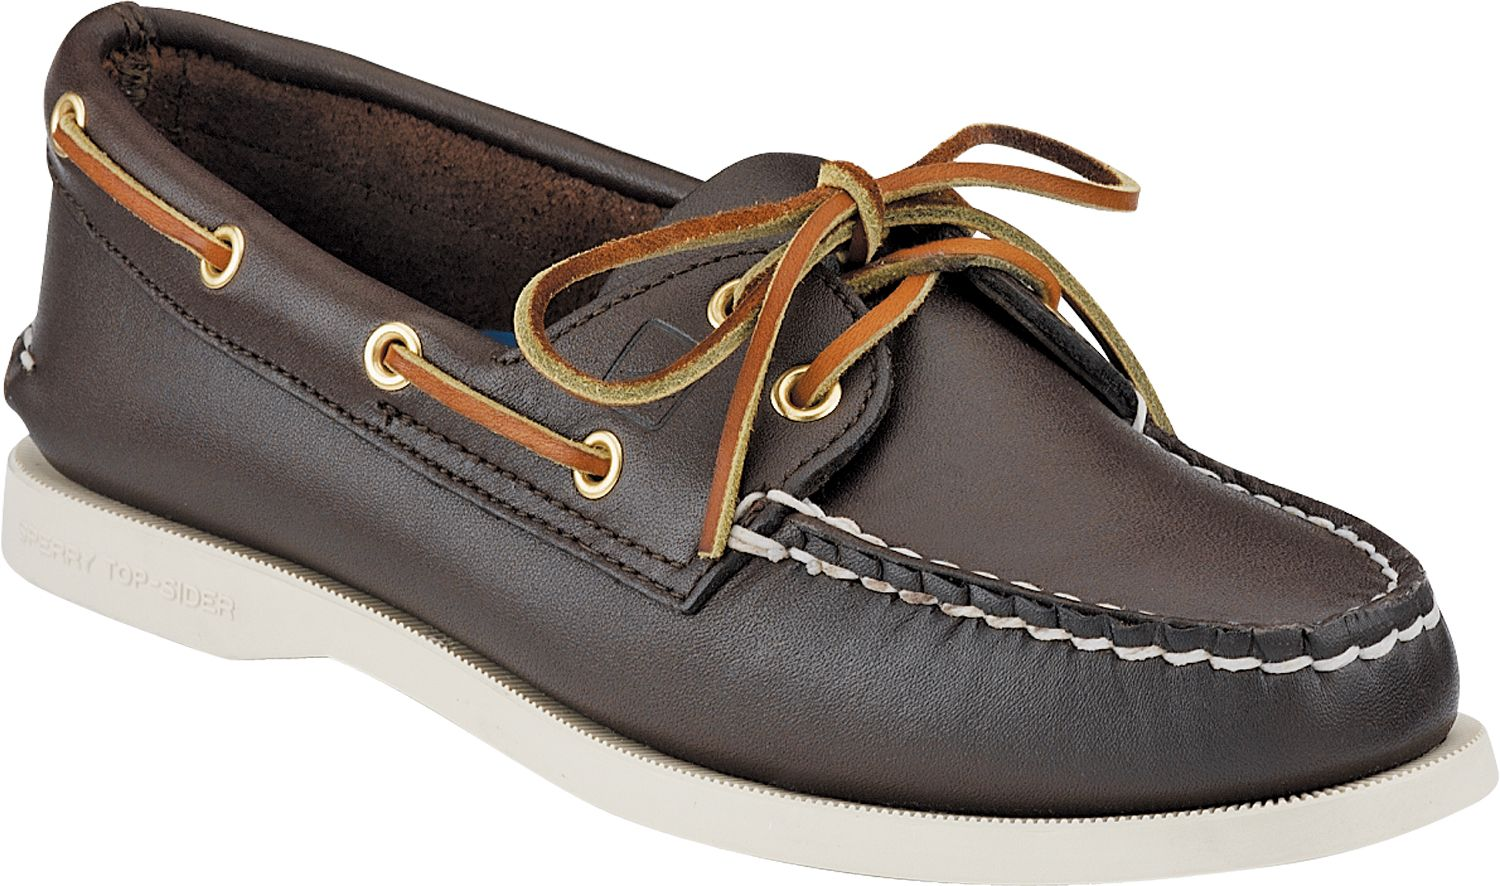 sperry top-sider shoes history citations formatting codes